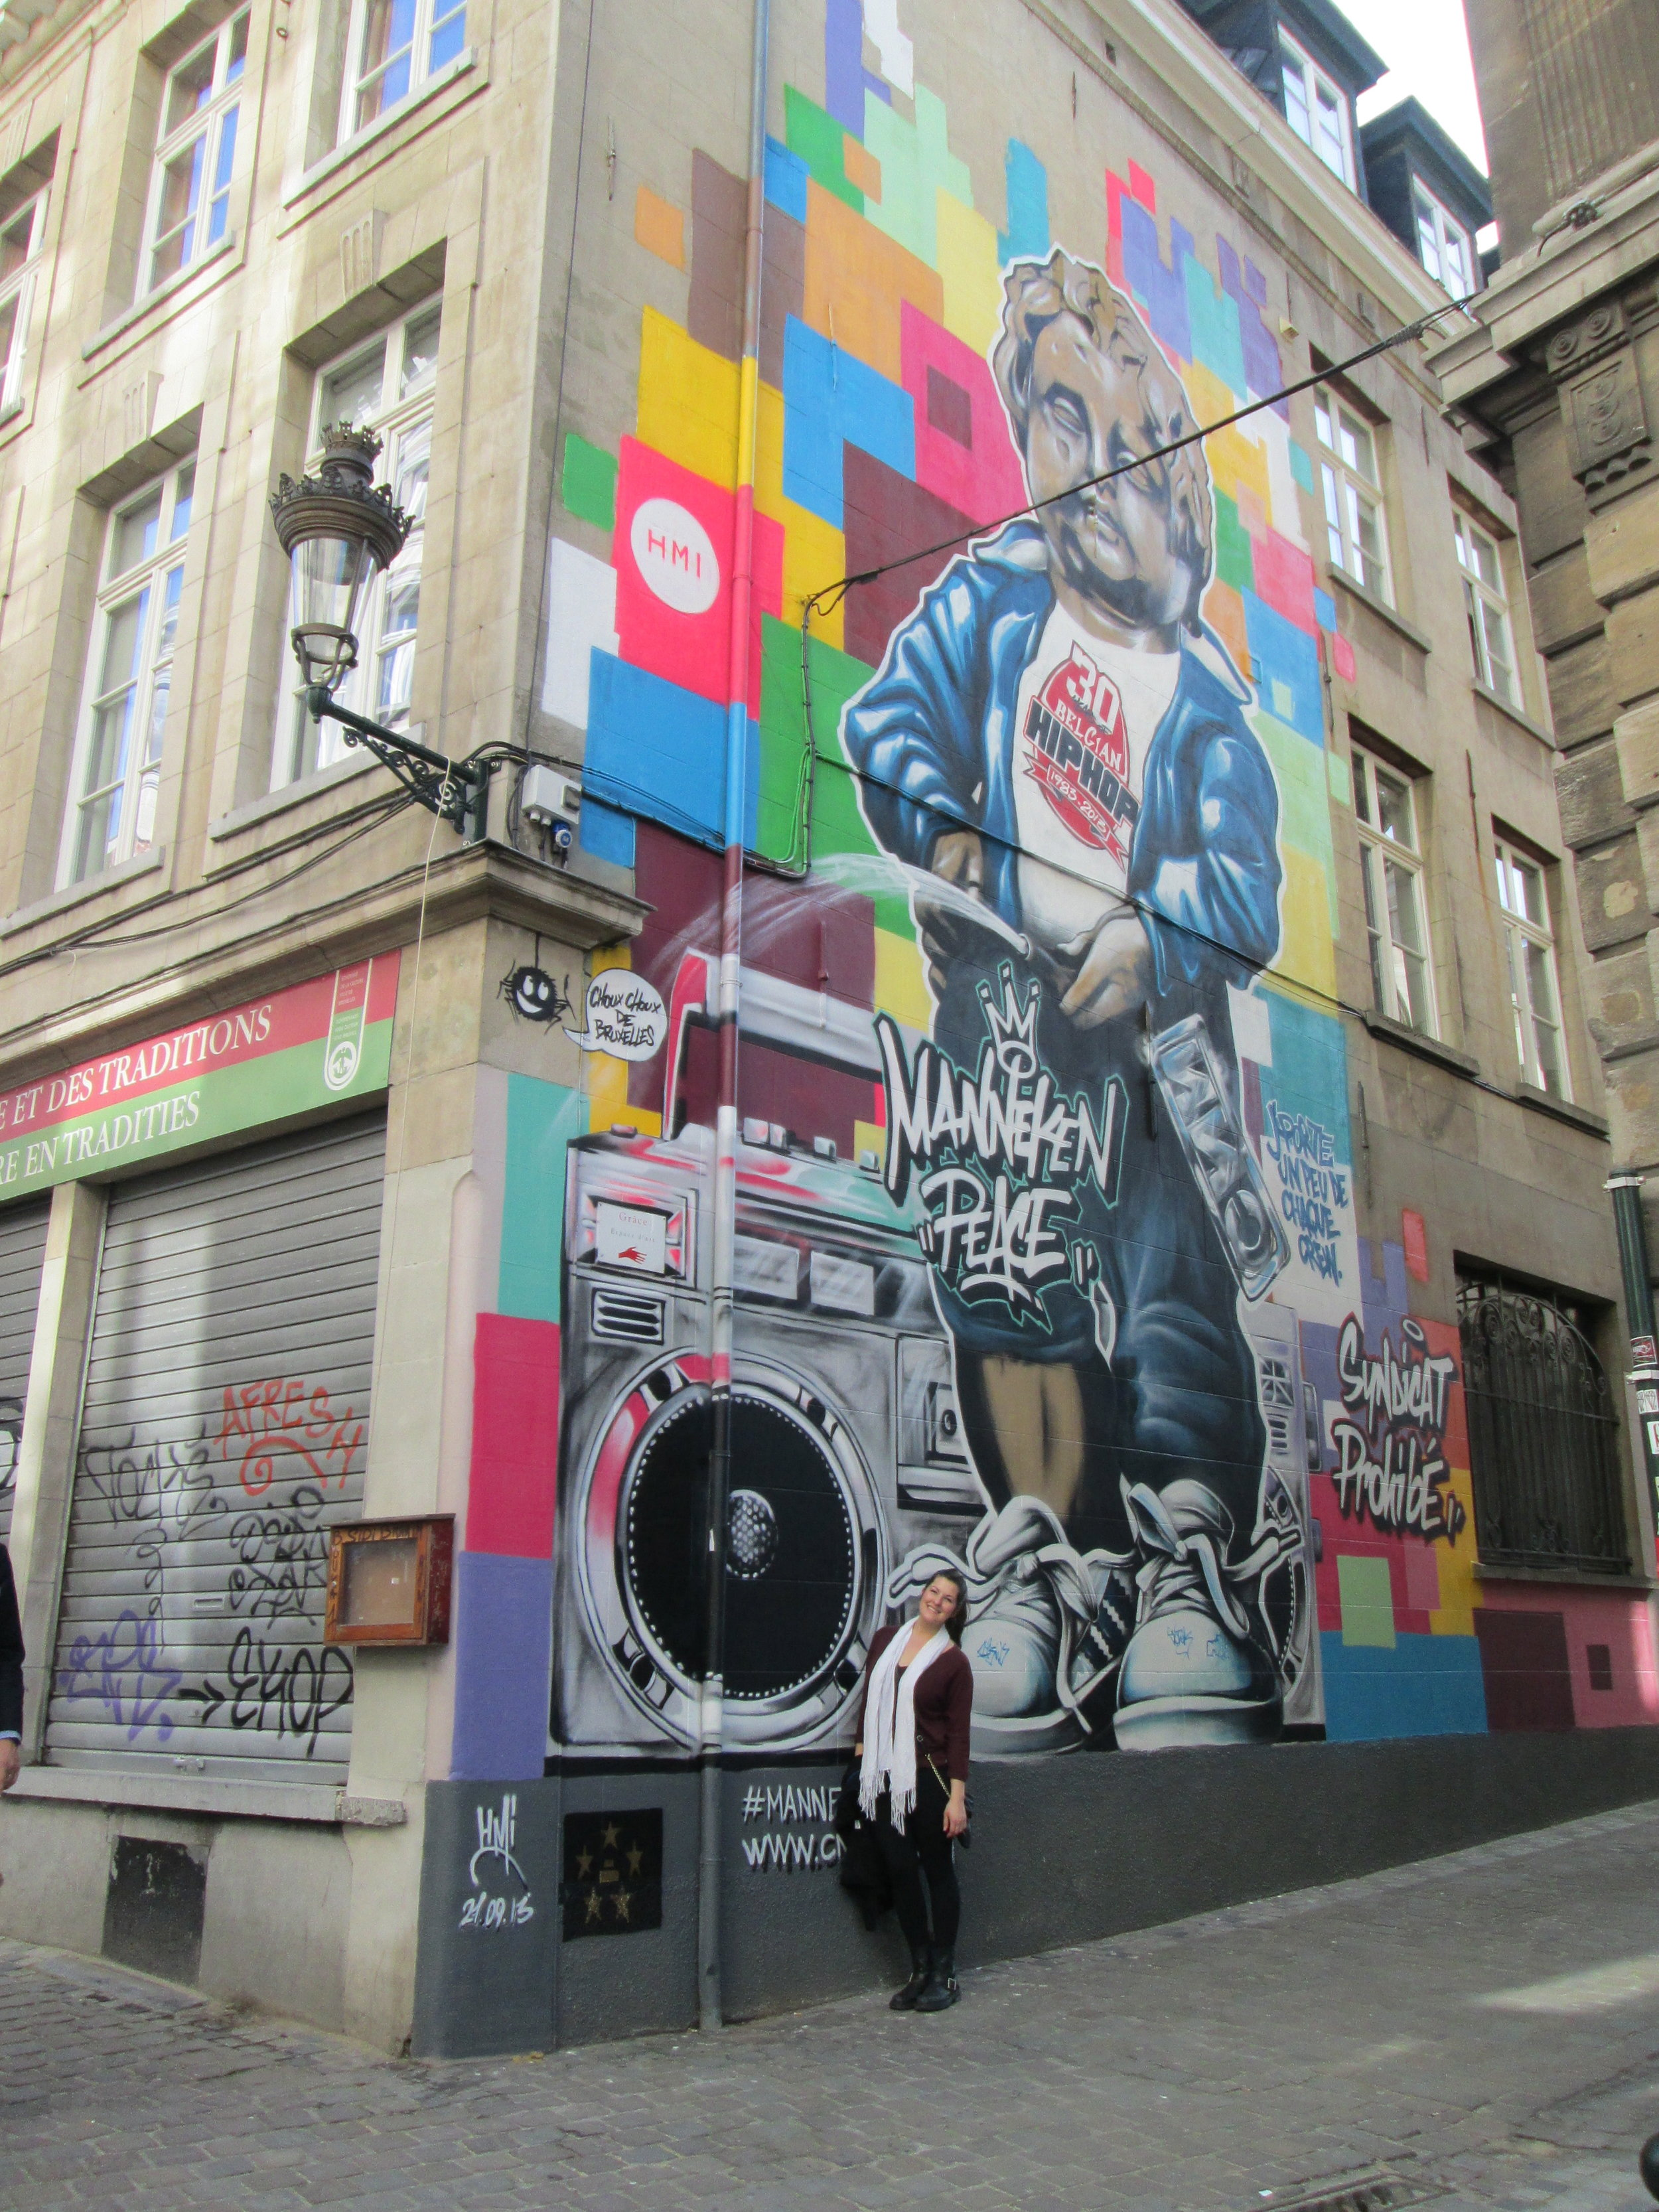 The famous Manneken Pis takes on a ghetto role in this feat of street art.